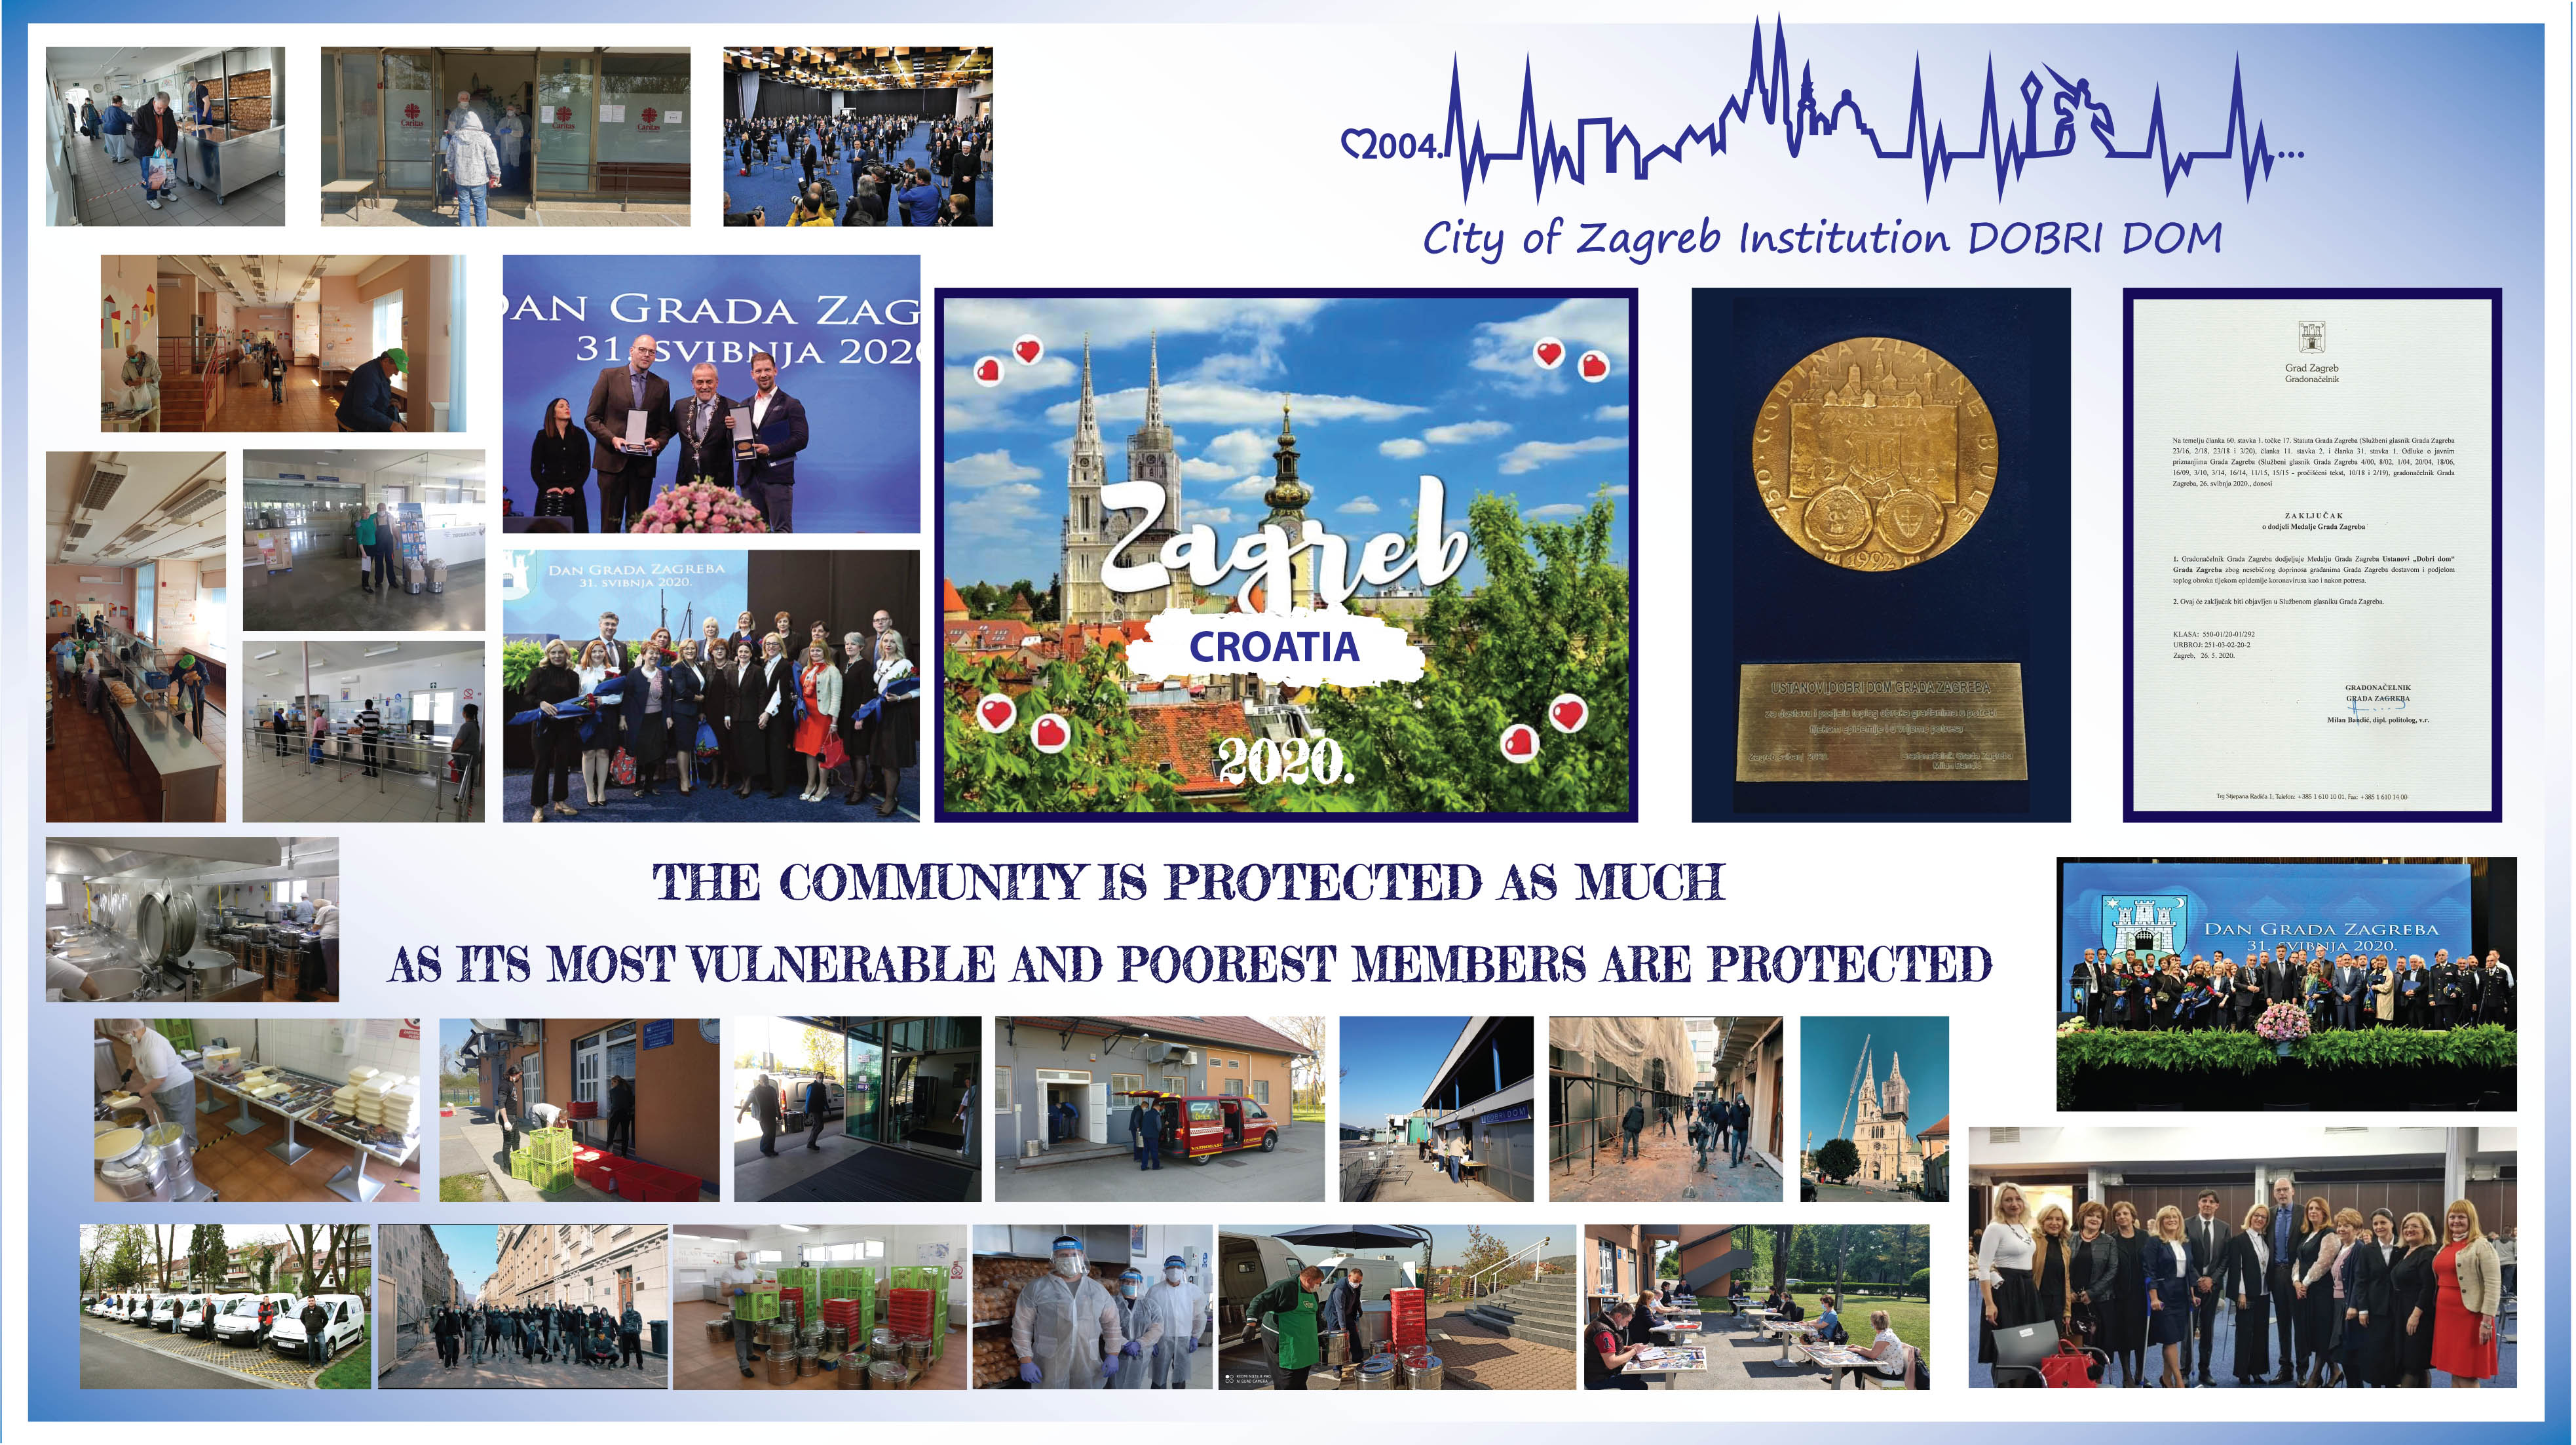 Award ceremony on the occasion of the Day of the City of Zagreb - 31.5.2020. MEDAL OF THE CITY OF ZAGREB Institutions Dobri dom of the City of Zagreb